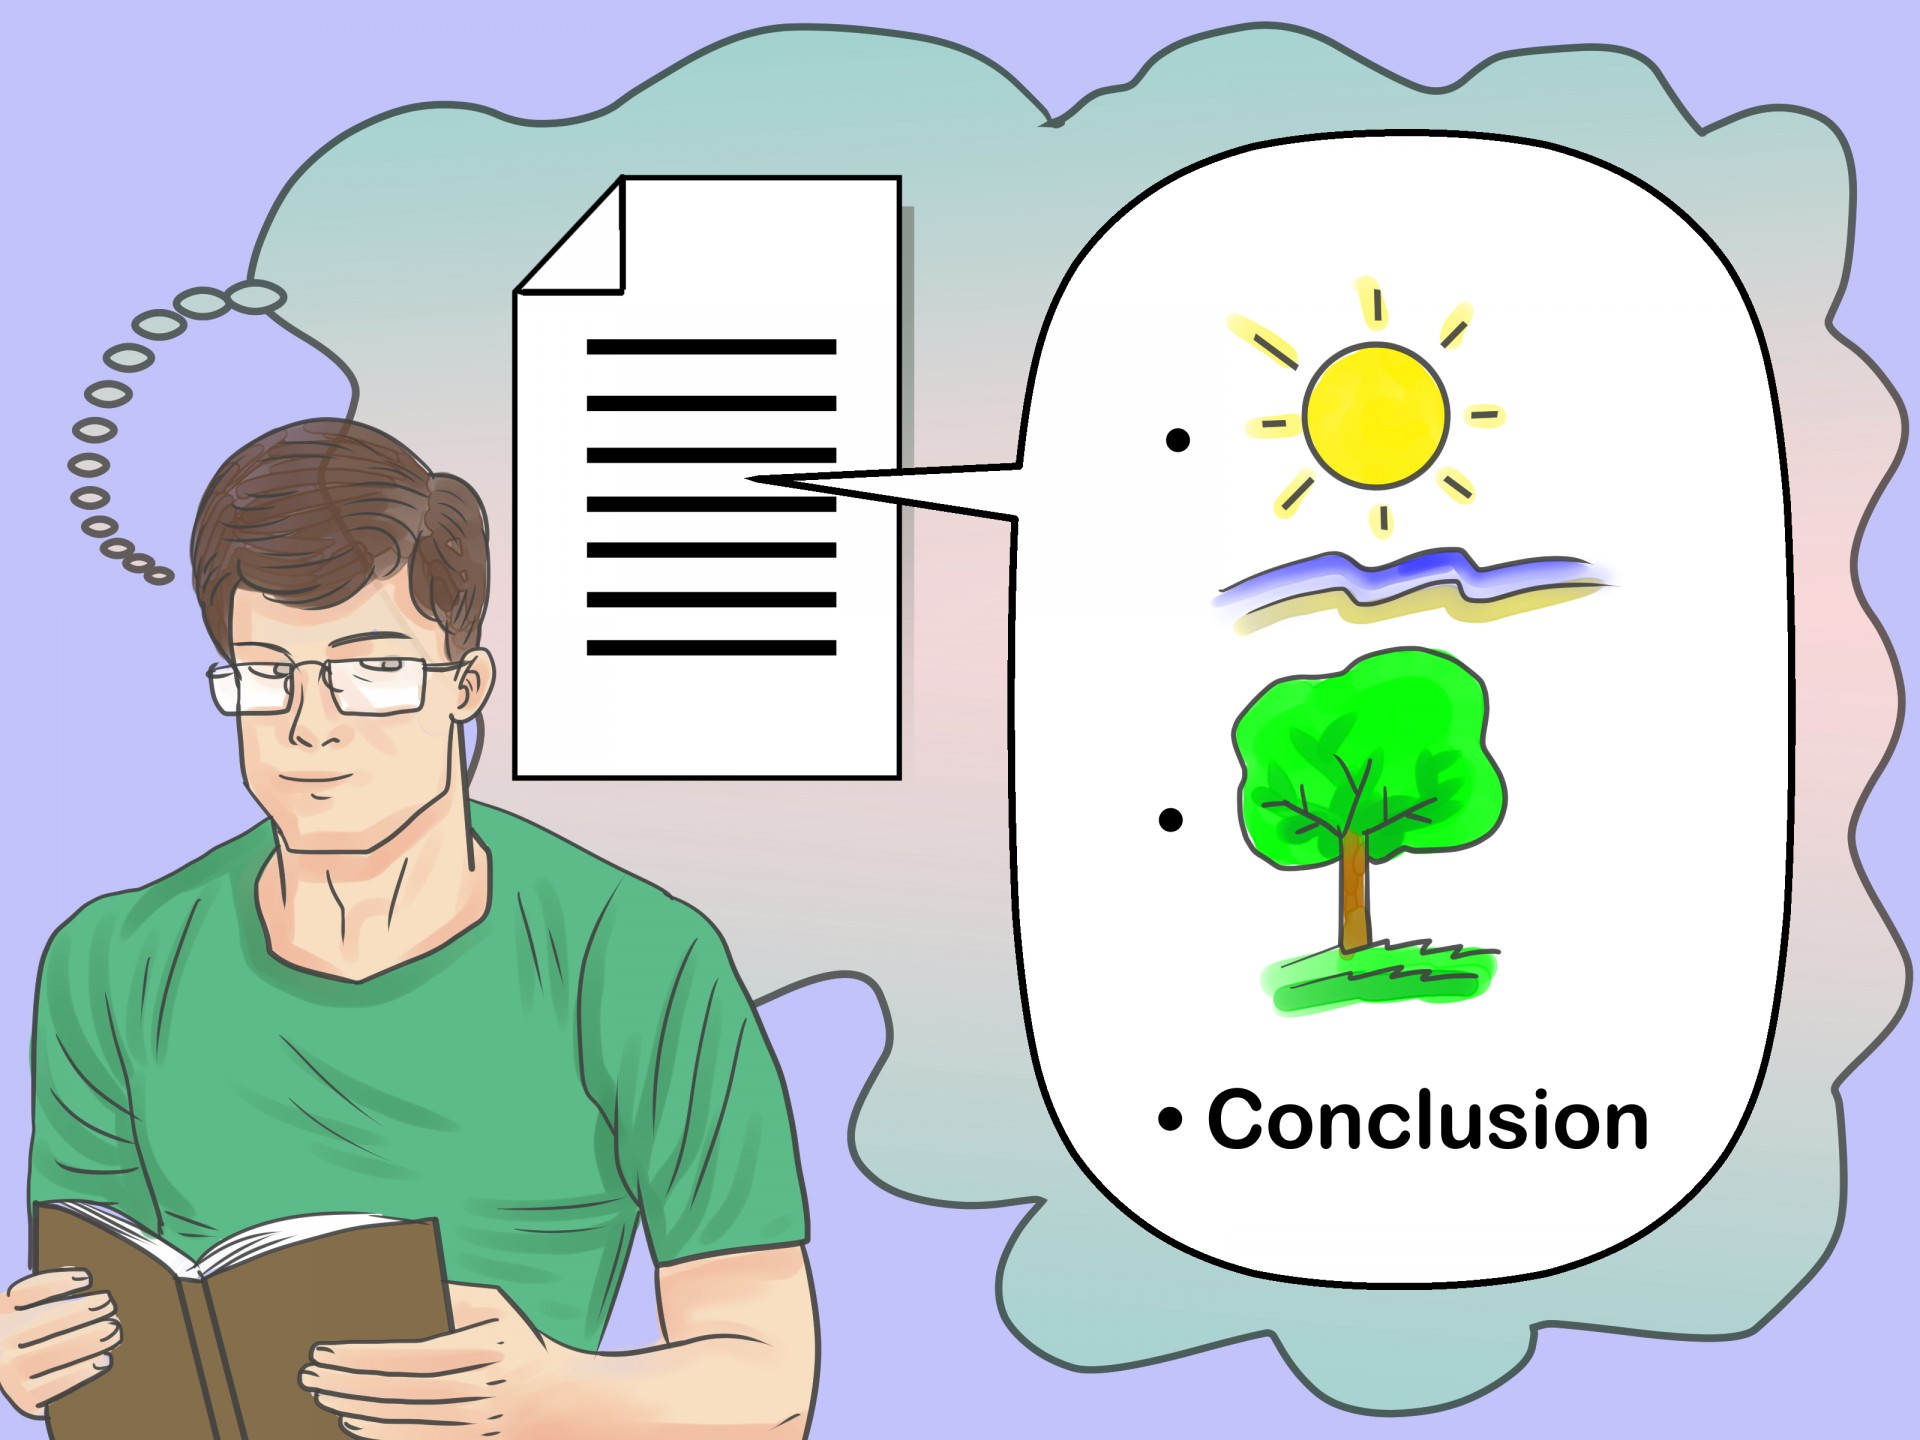 020 Write Compare And Contrast Essay Step Version Beautiful Topics Ielts Examples College Middle School 1920